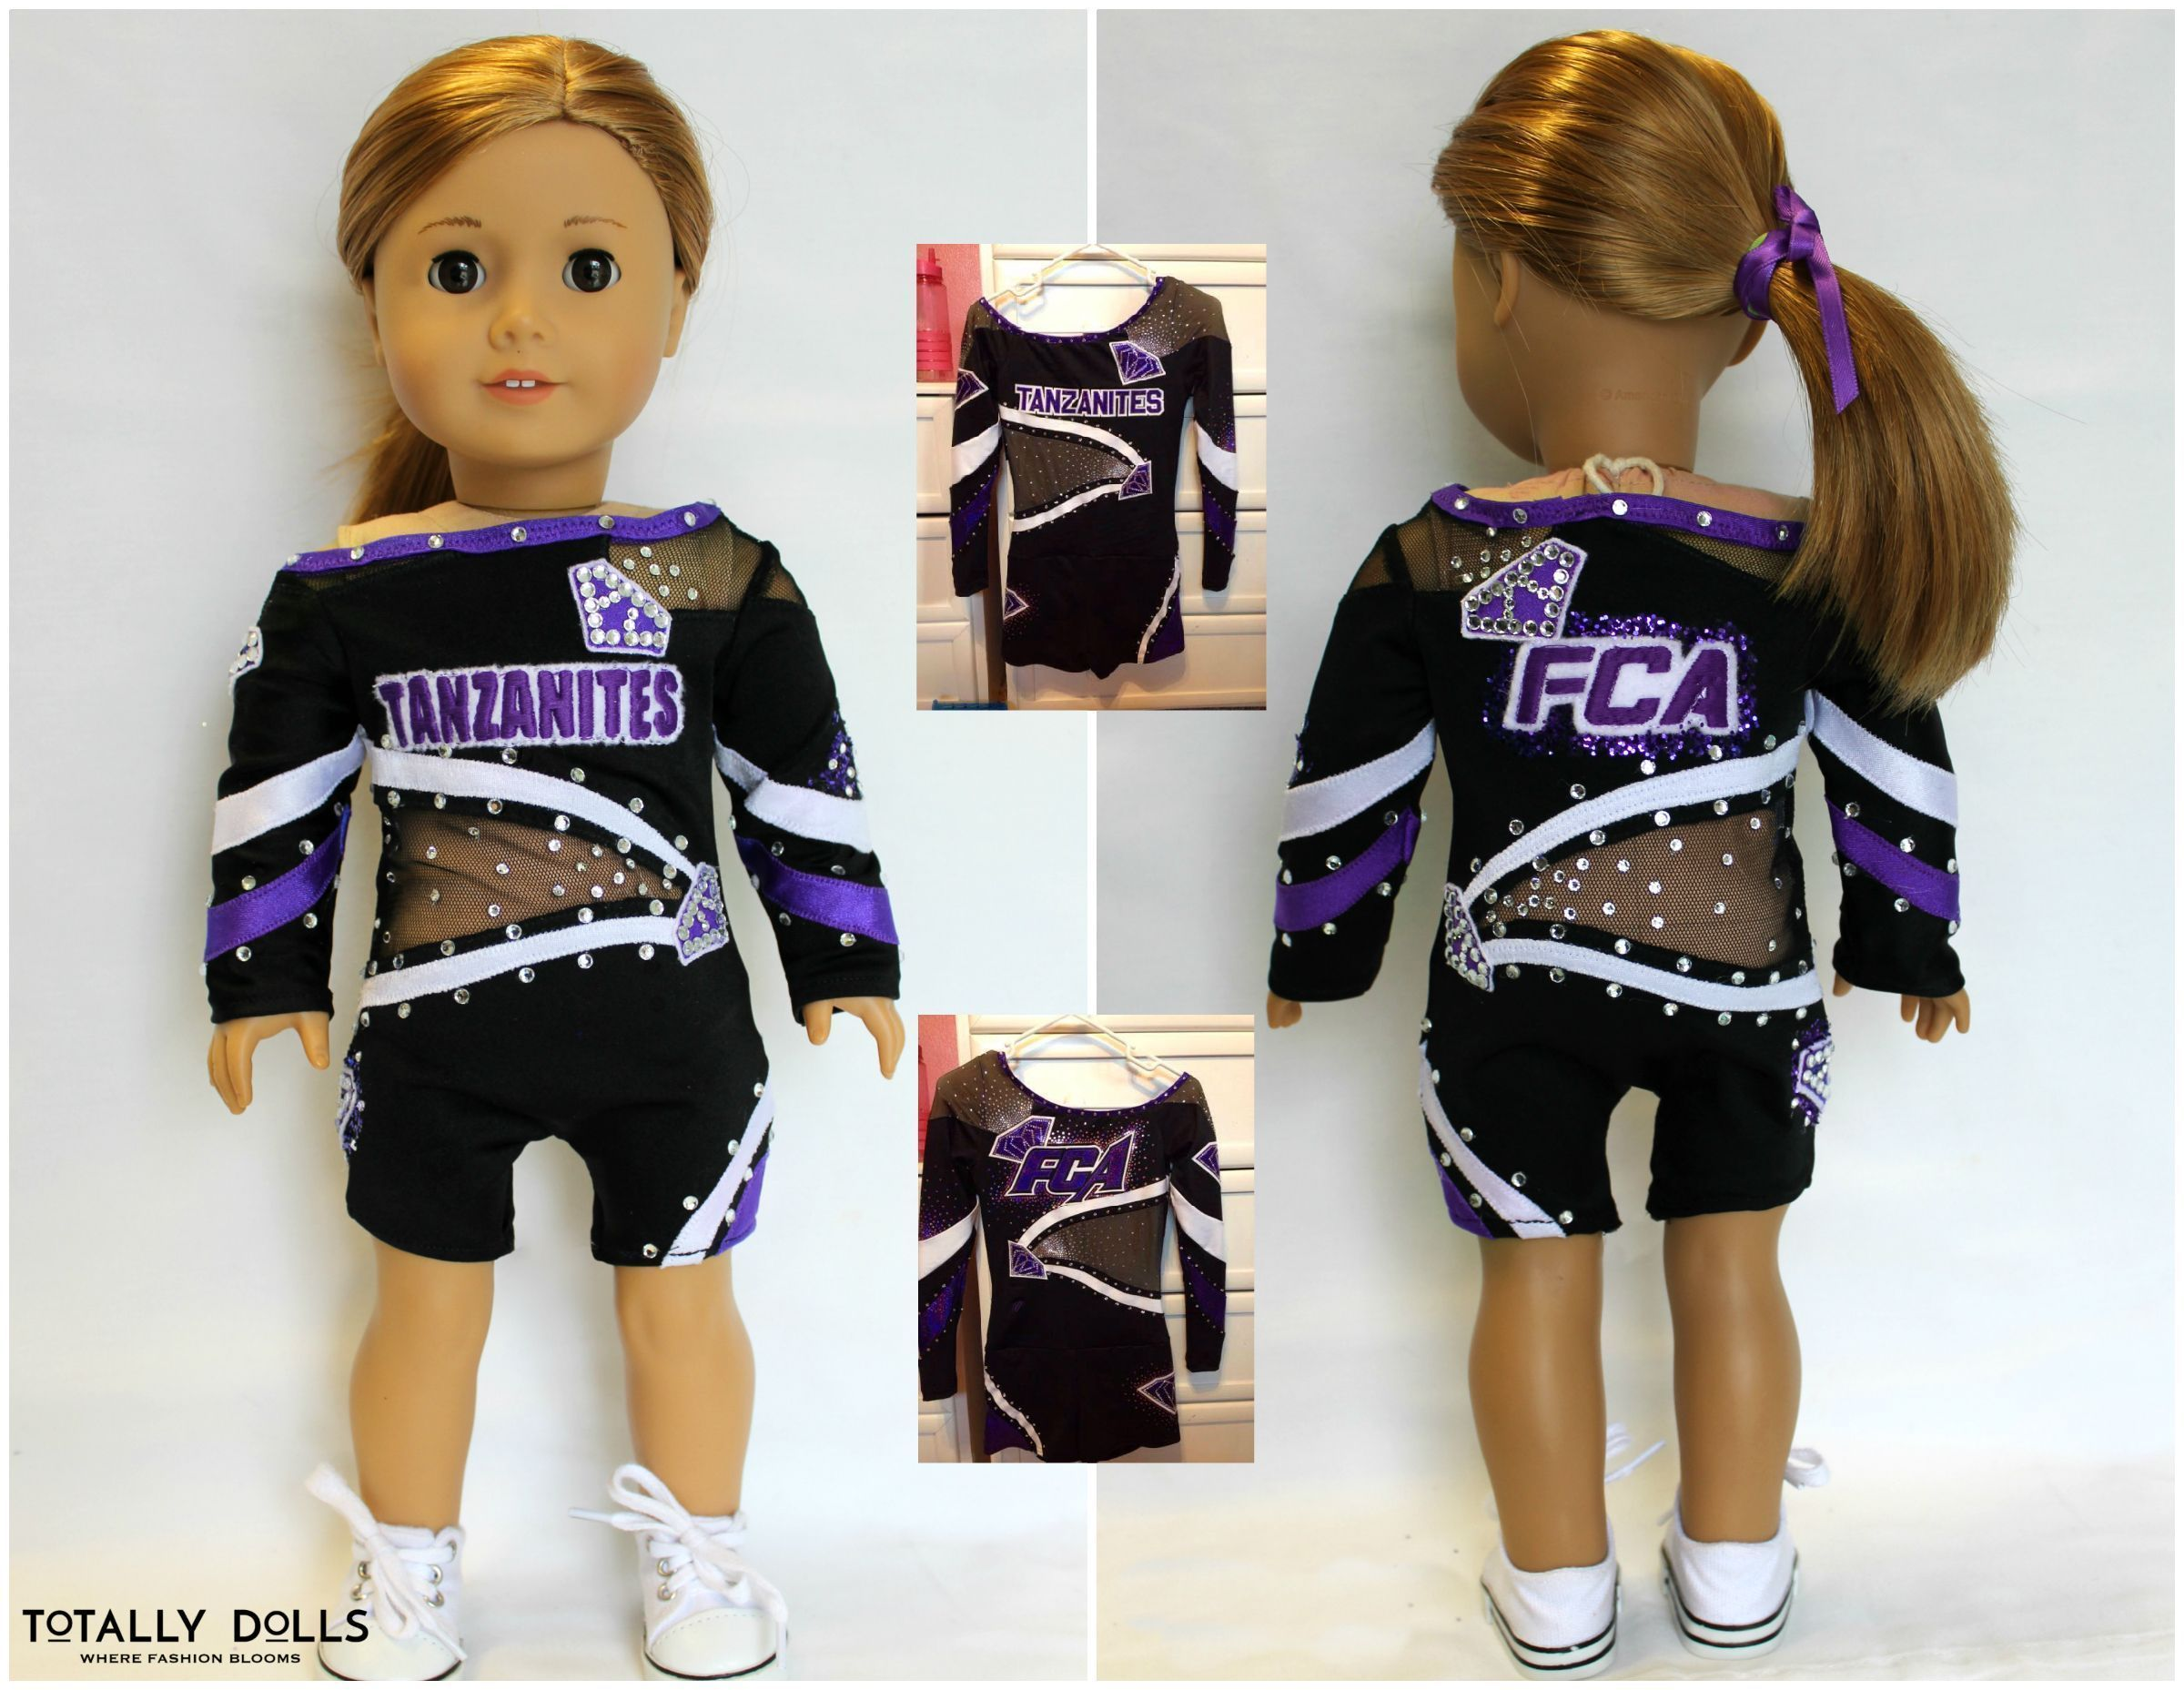 Custom American Girl Doll Clothing - Competition Cheer Uniform Replica to fit 18 Inch Dolls - Ask us about our custom orders and see what Totally Dolls can create for you! #18inchcheerleaderclothes Custom American Girl Doll Clothing - Competition Cheer Uniform Replica to fit 18 Inch Dolls - Ask us about our custom orders and see what Totally Dolls can create for you! #18inchcheerleaderclothes Custom American Girl Doll Clothing - Competition Cheer Uniform Replica to fit 18 Inch Dolls - Ask us abo #18inchcheerleaderclothes